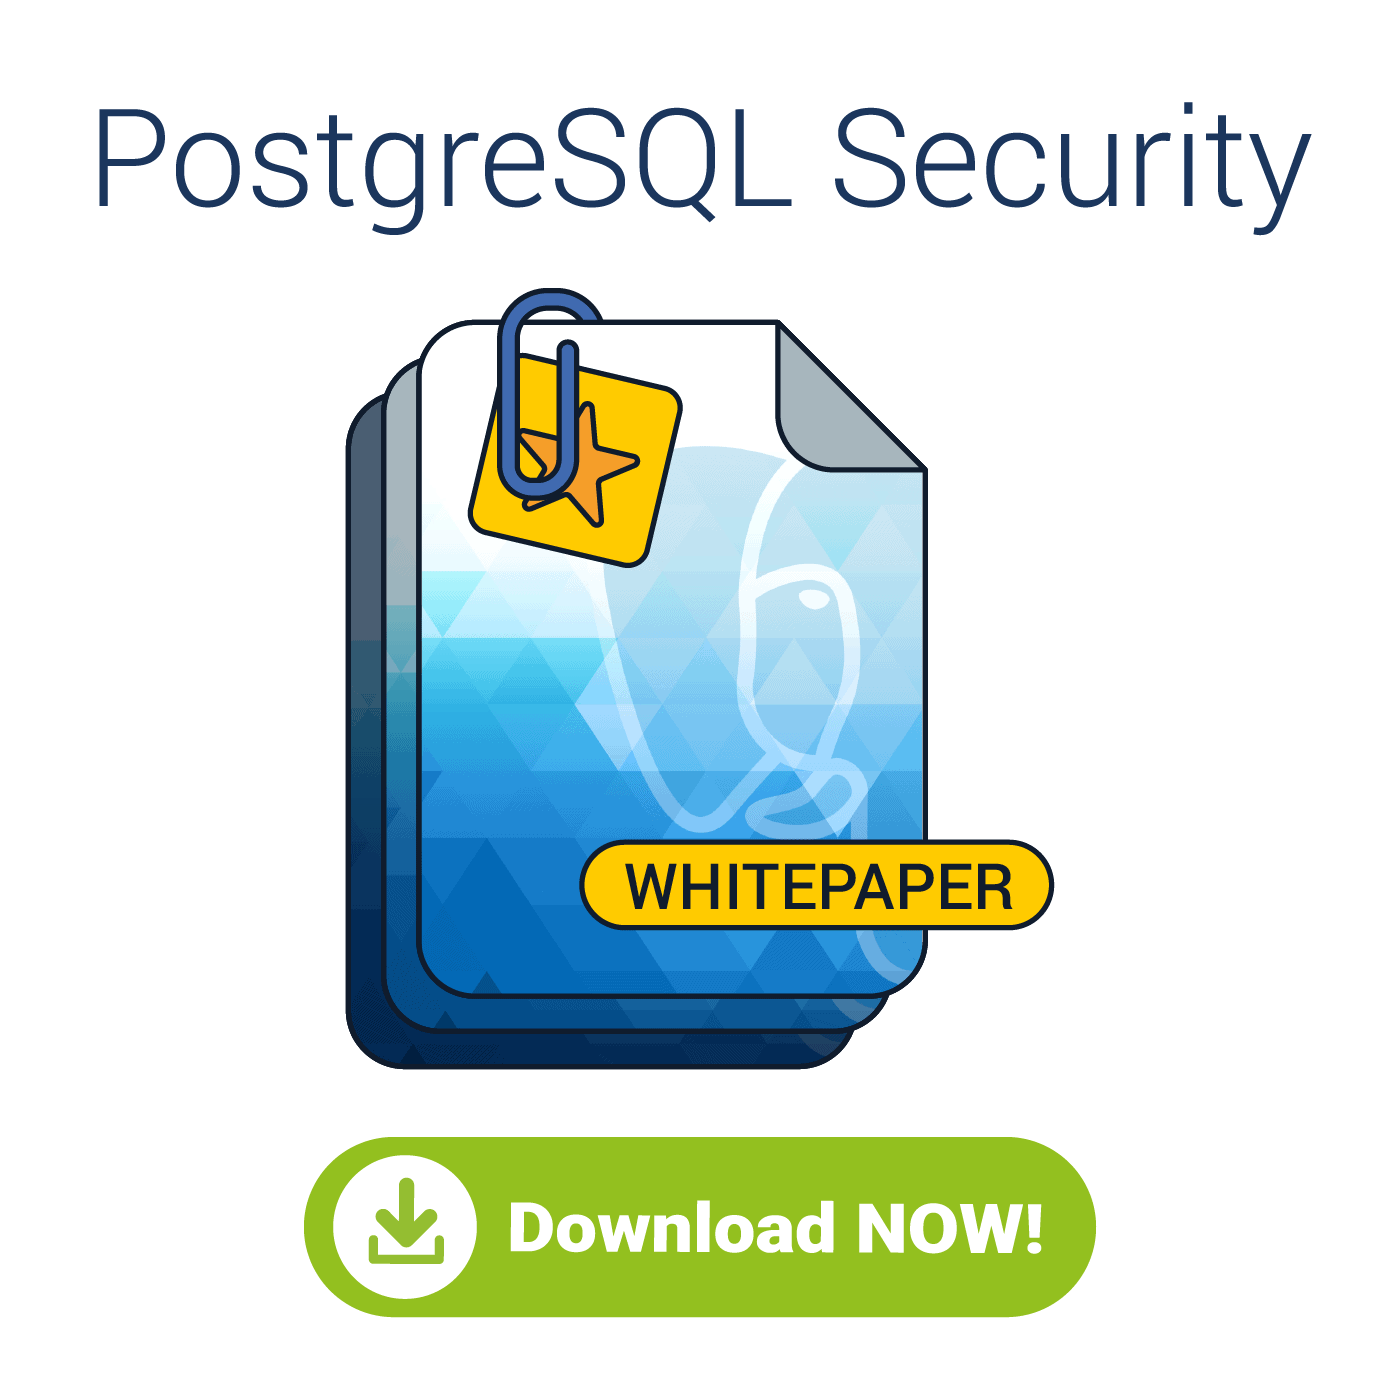 Learn how to harden your database cluster using the industry best practices presented in this PostgreSQL security whitepaper.